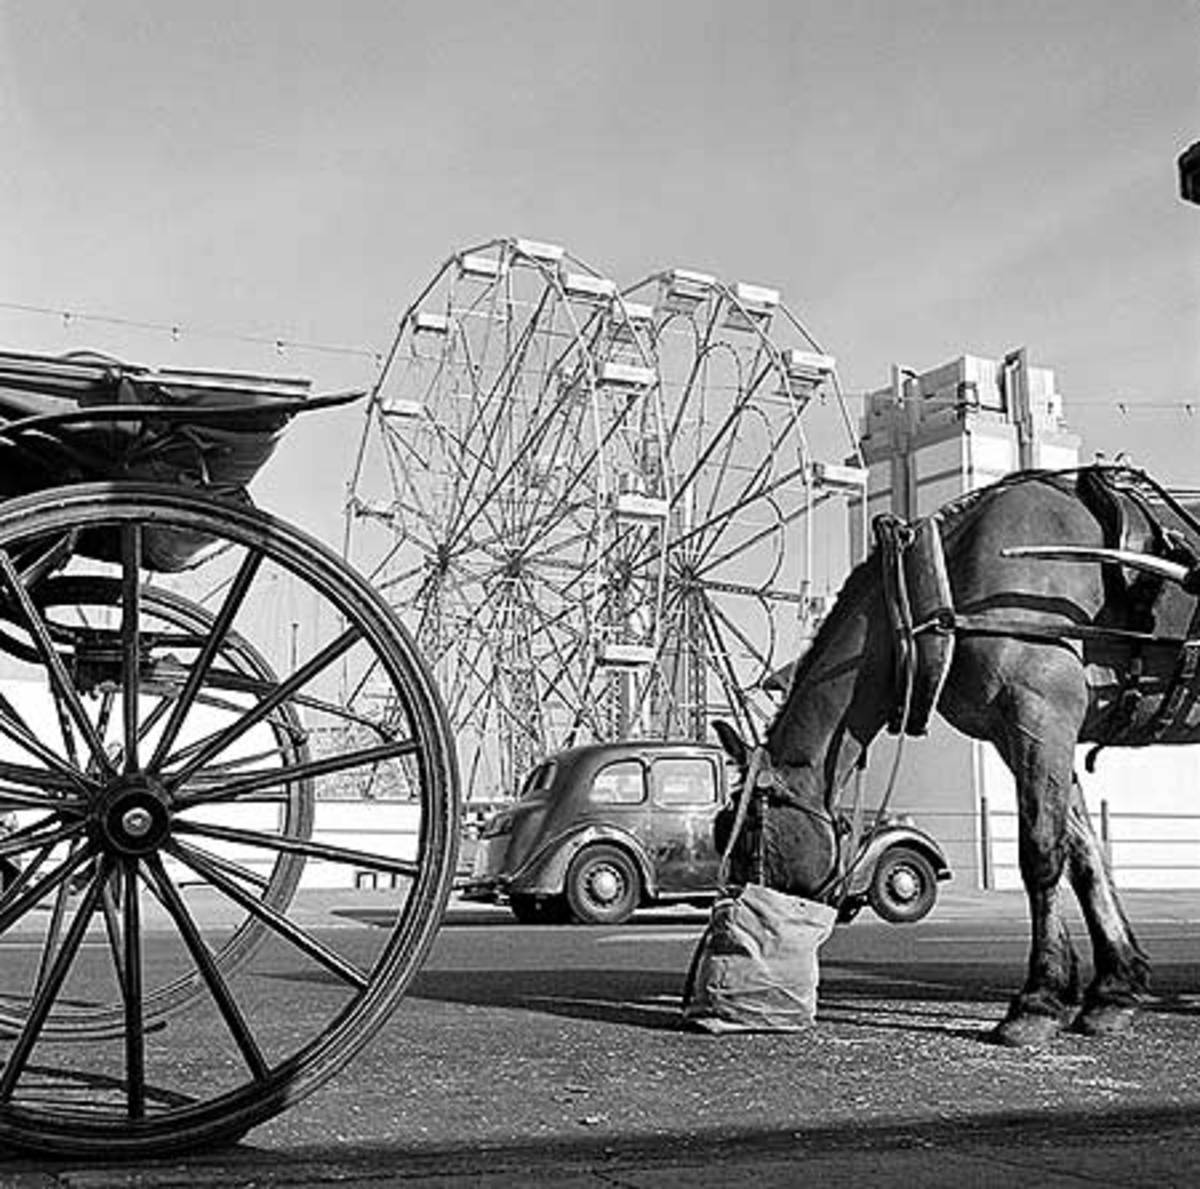 This picture of Blackpool Pleasure Beach was taken between 1946 and 1955, it is one of the most popular attractions in England, and offers rides such as the double ferris wheel seen here. A horse-drawn carriage along the promenade provides a more sed